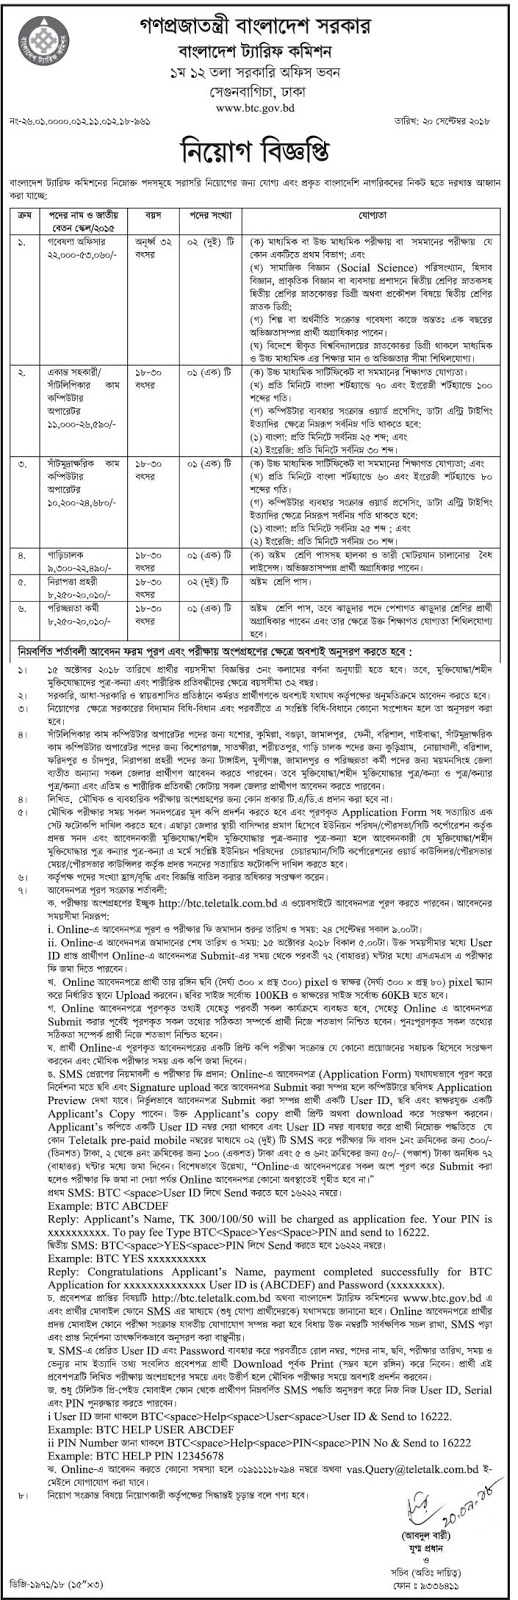 Bangladesh Tariff Commission (BTC) Job Circular 2018